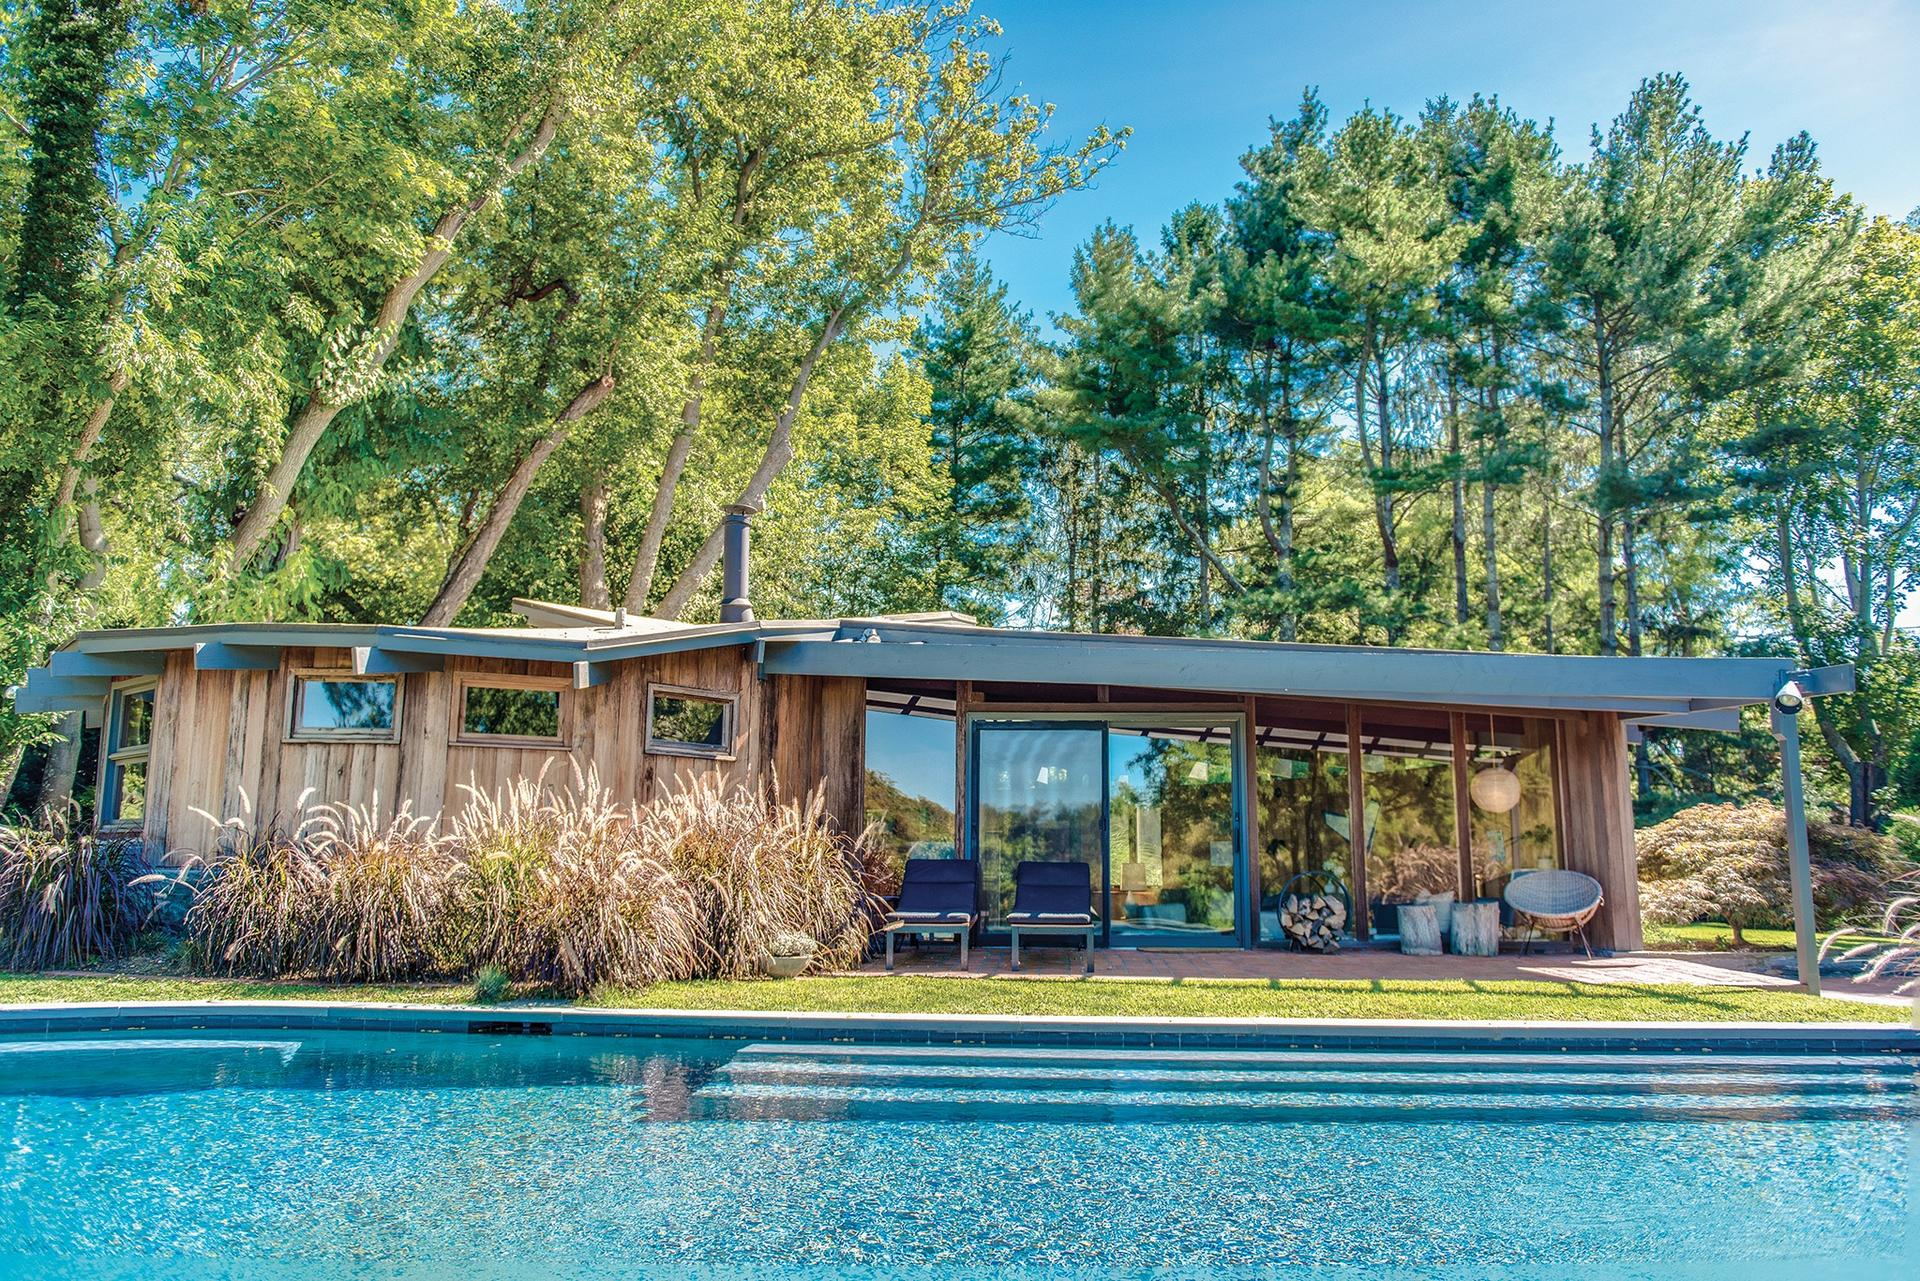 Single Family Home for Sale at Shelter Island East Meets West Modernist Pond Front 15-17 Congdon Road, Shelter Island, New York